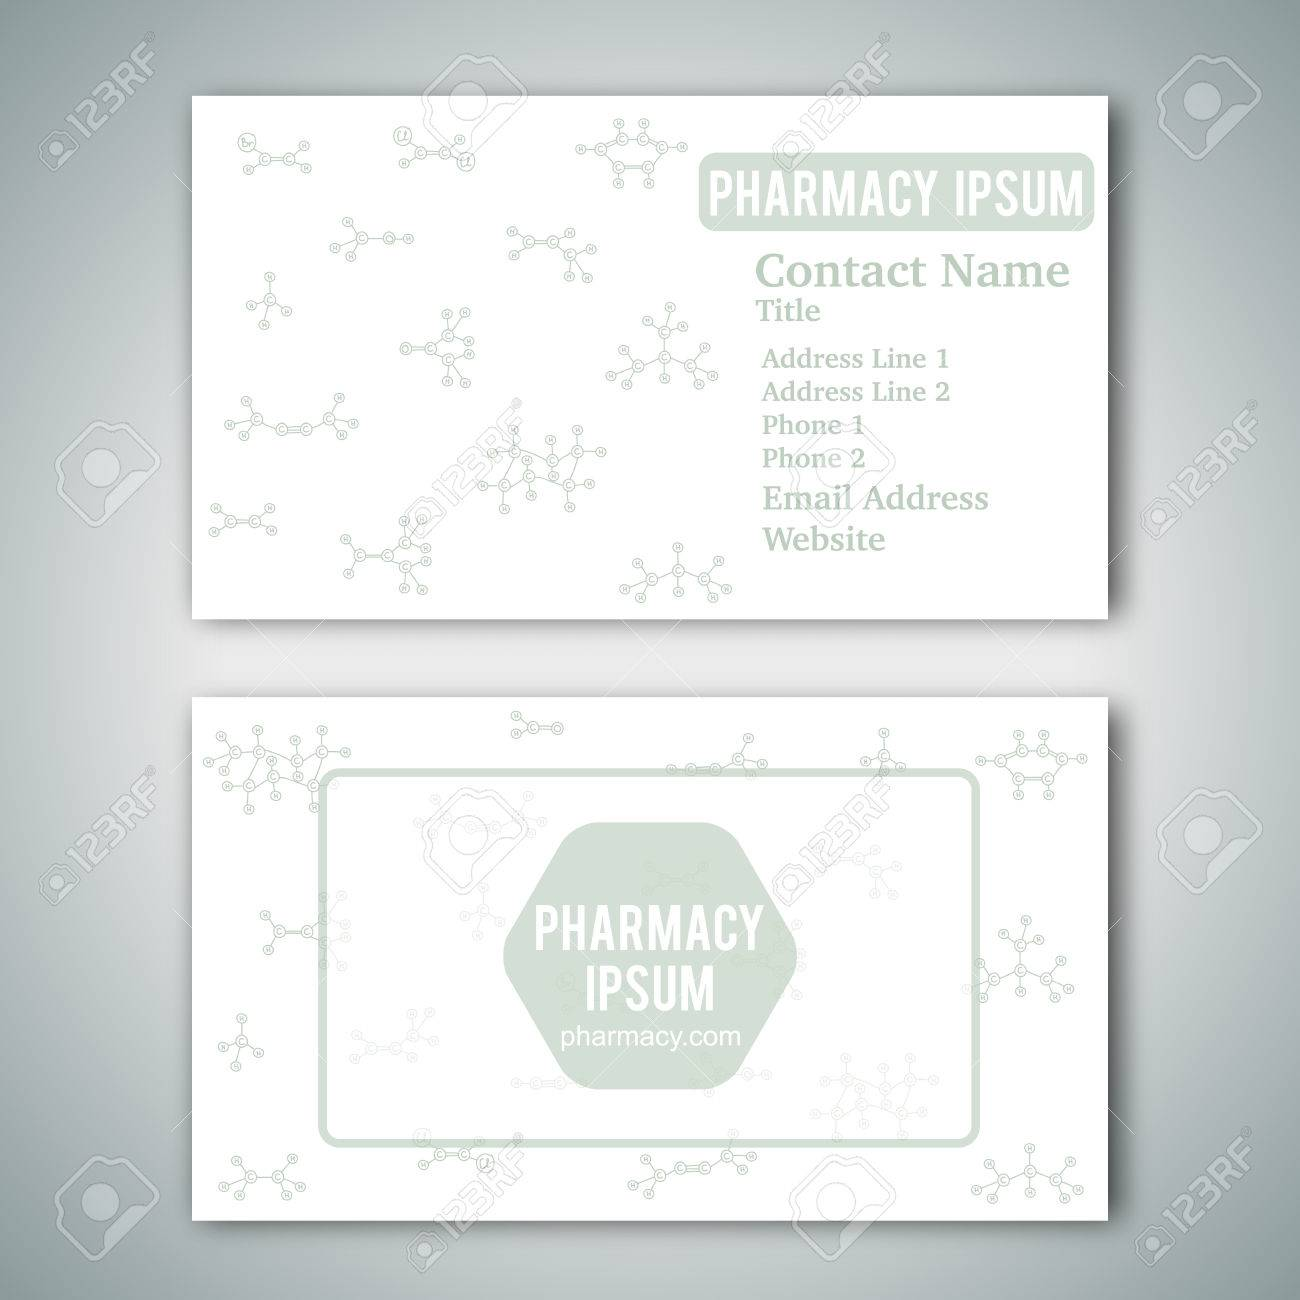 Business Card Template With Hand Drawn Doodles Of Cartoon Organic Chemical Molecule Vector Illustration